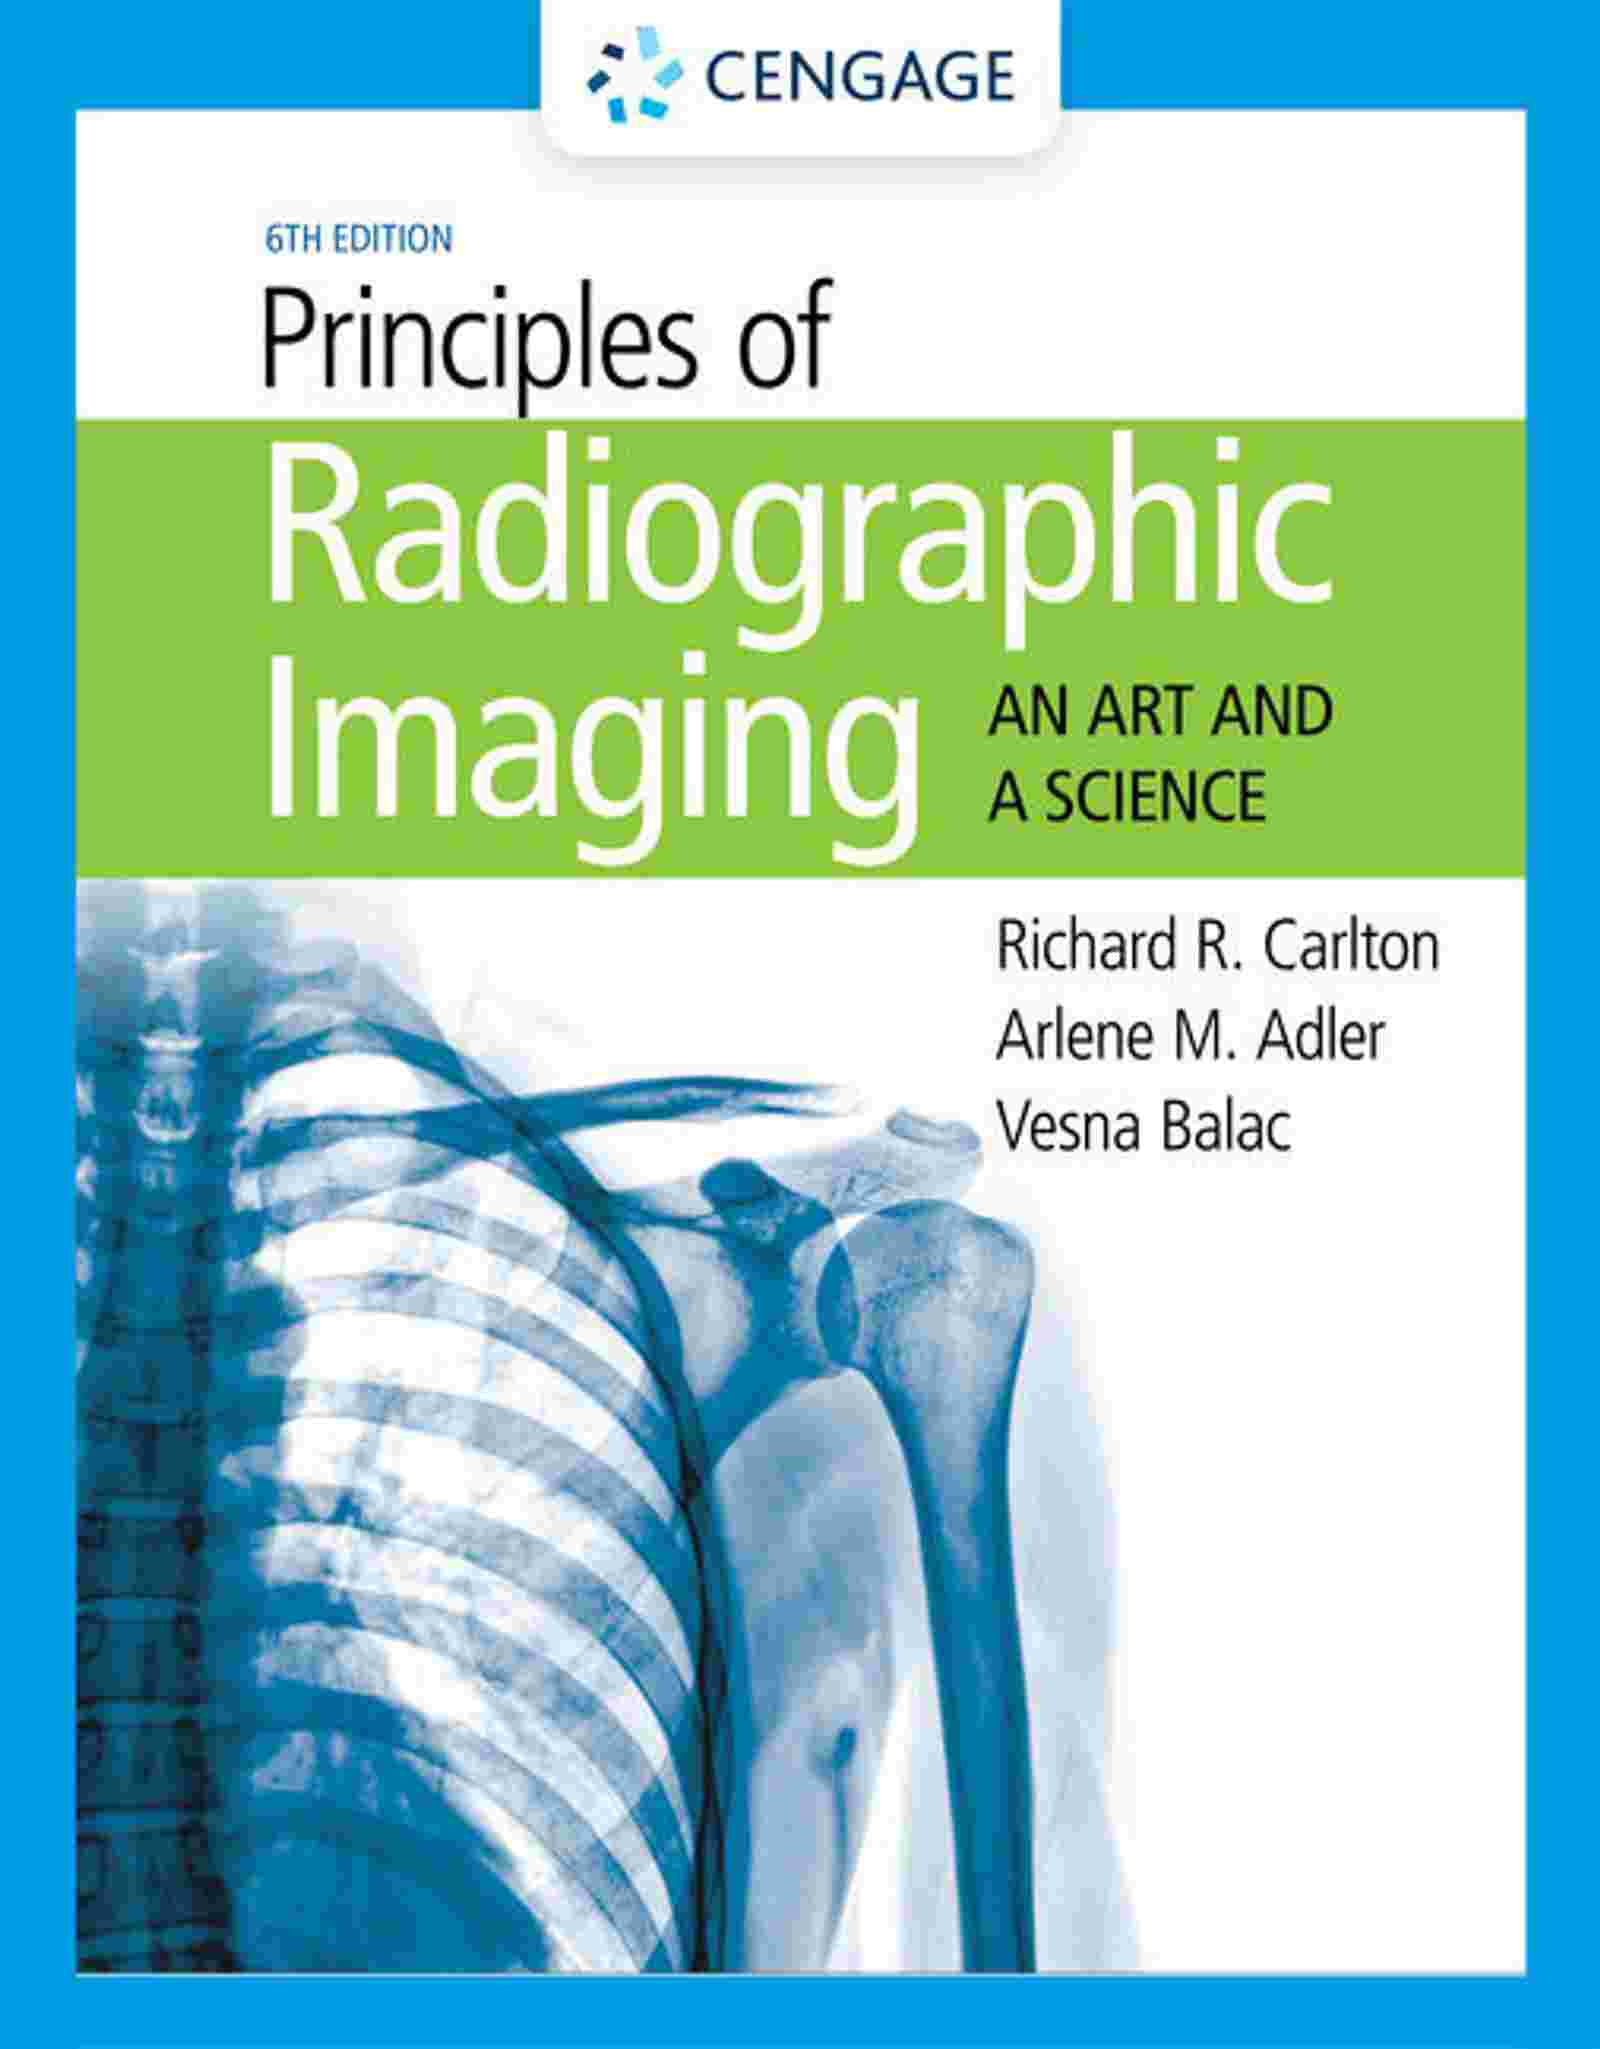 Principles of Radiographic Imaging: An Art and a Science, 6th Edition